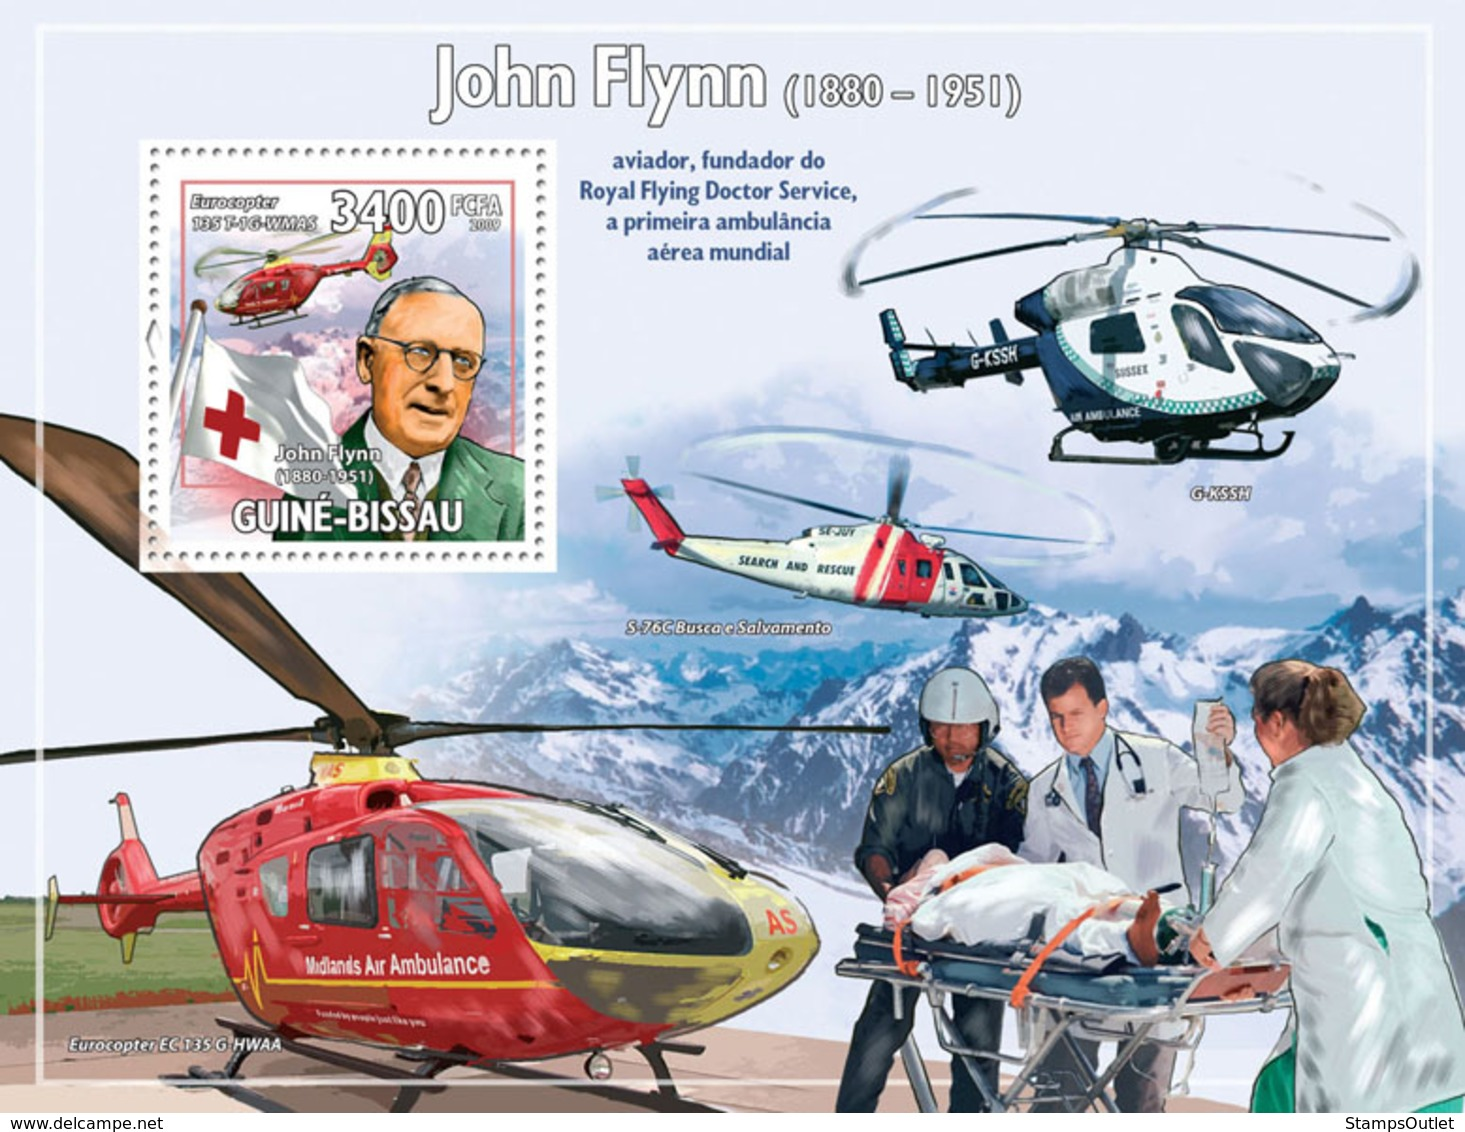 Guinea - Bissau 2009 - John Flynn (1880-1951), Helicopters & Red Cross S/s Y&T 487, Michel 4520/BL737 - Guinea-Bissau